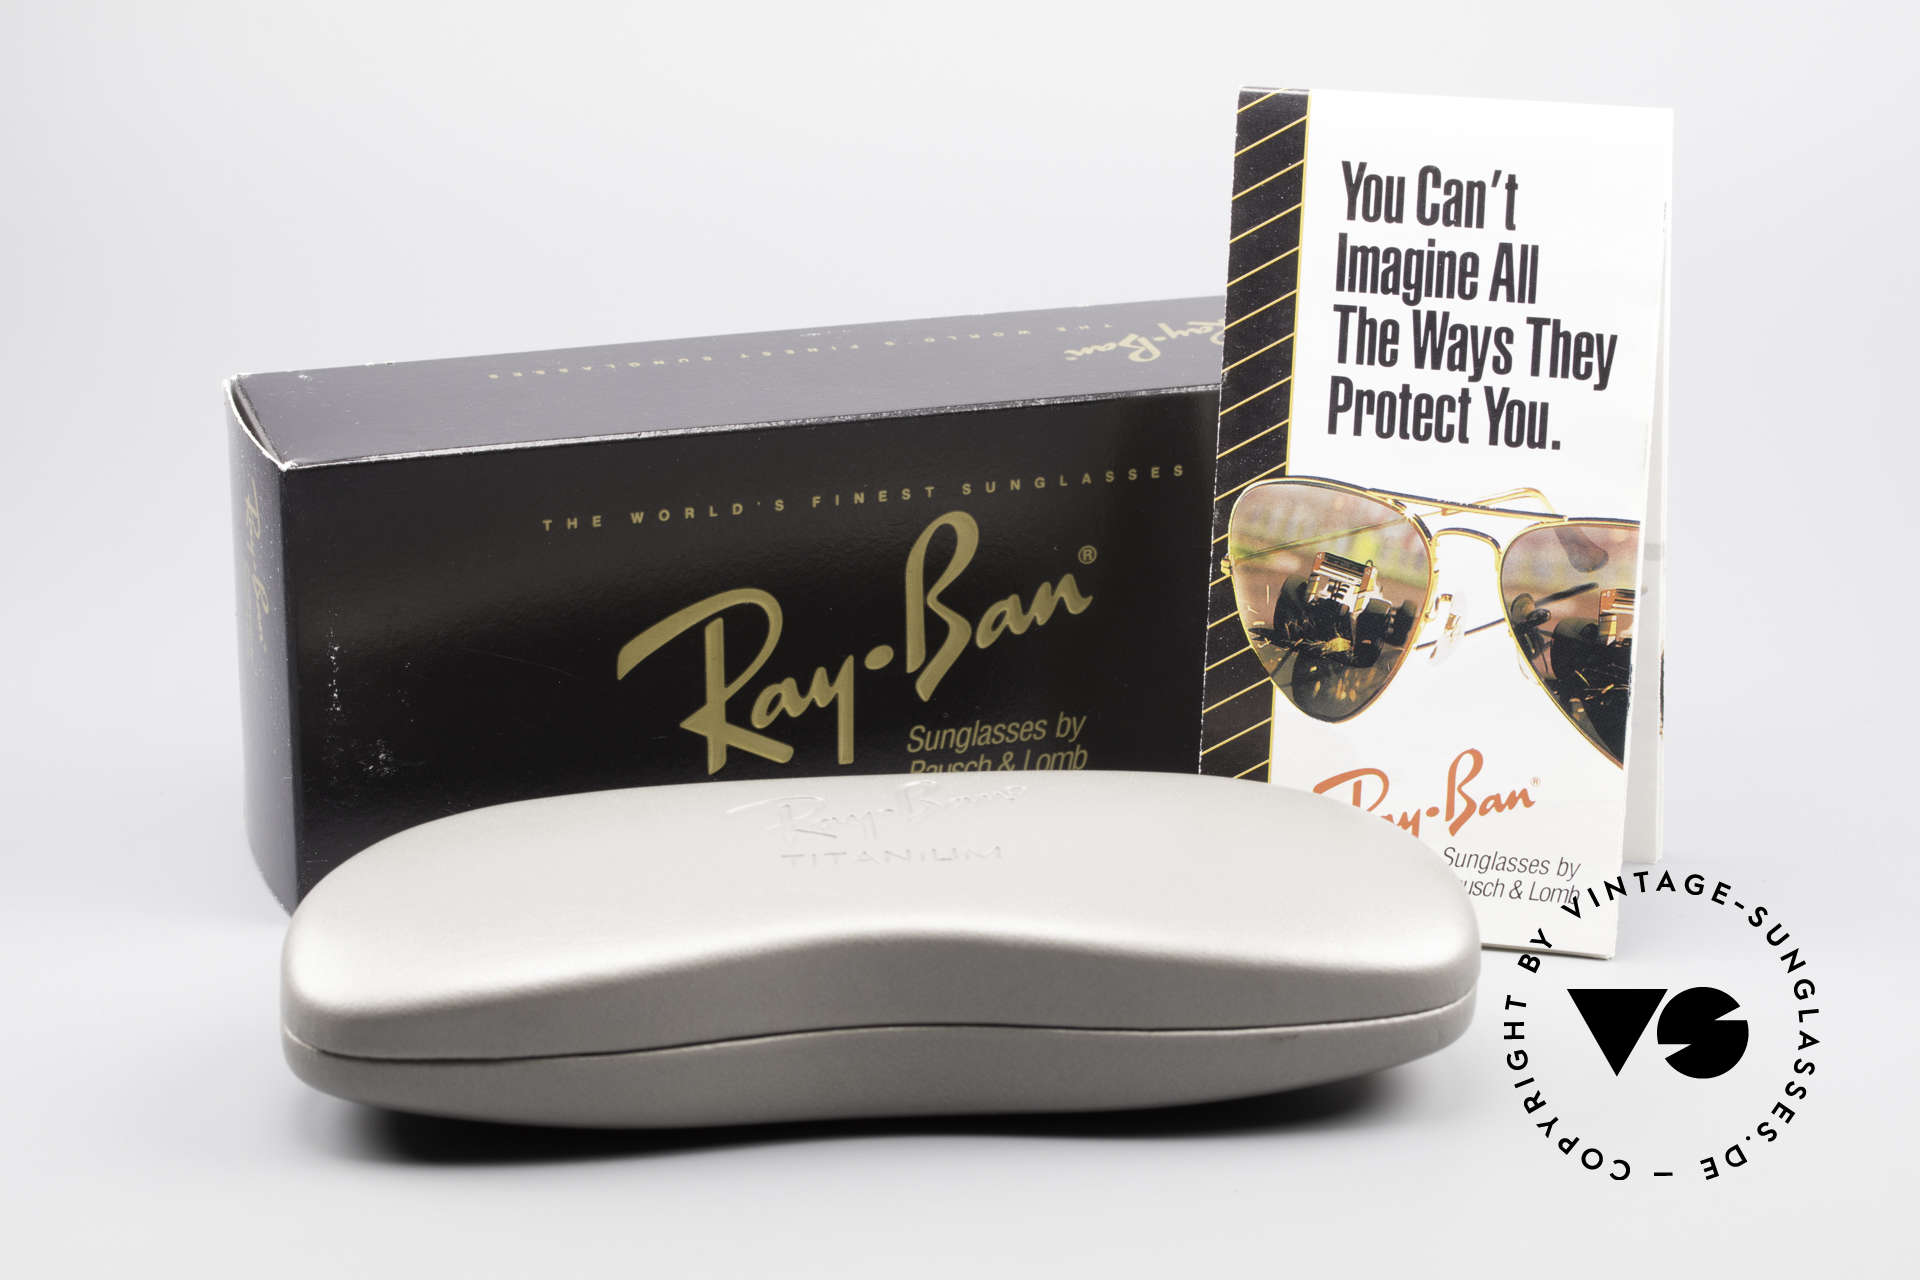 Ray Ban Gatsby Style 6 Old Ray-Ban USA Sunglasses, Size: small, Made for Men and Women